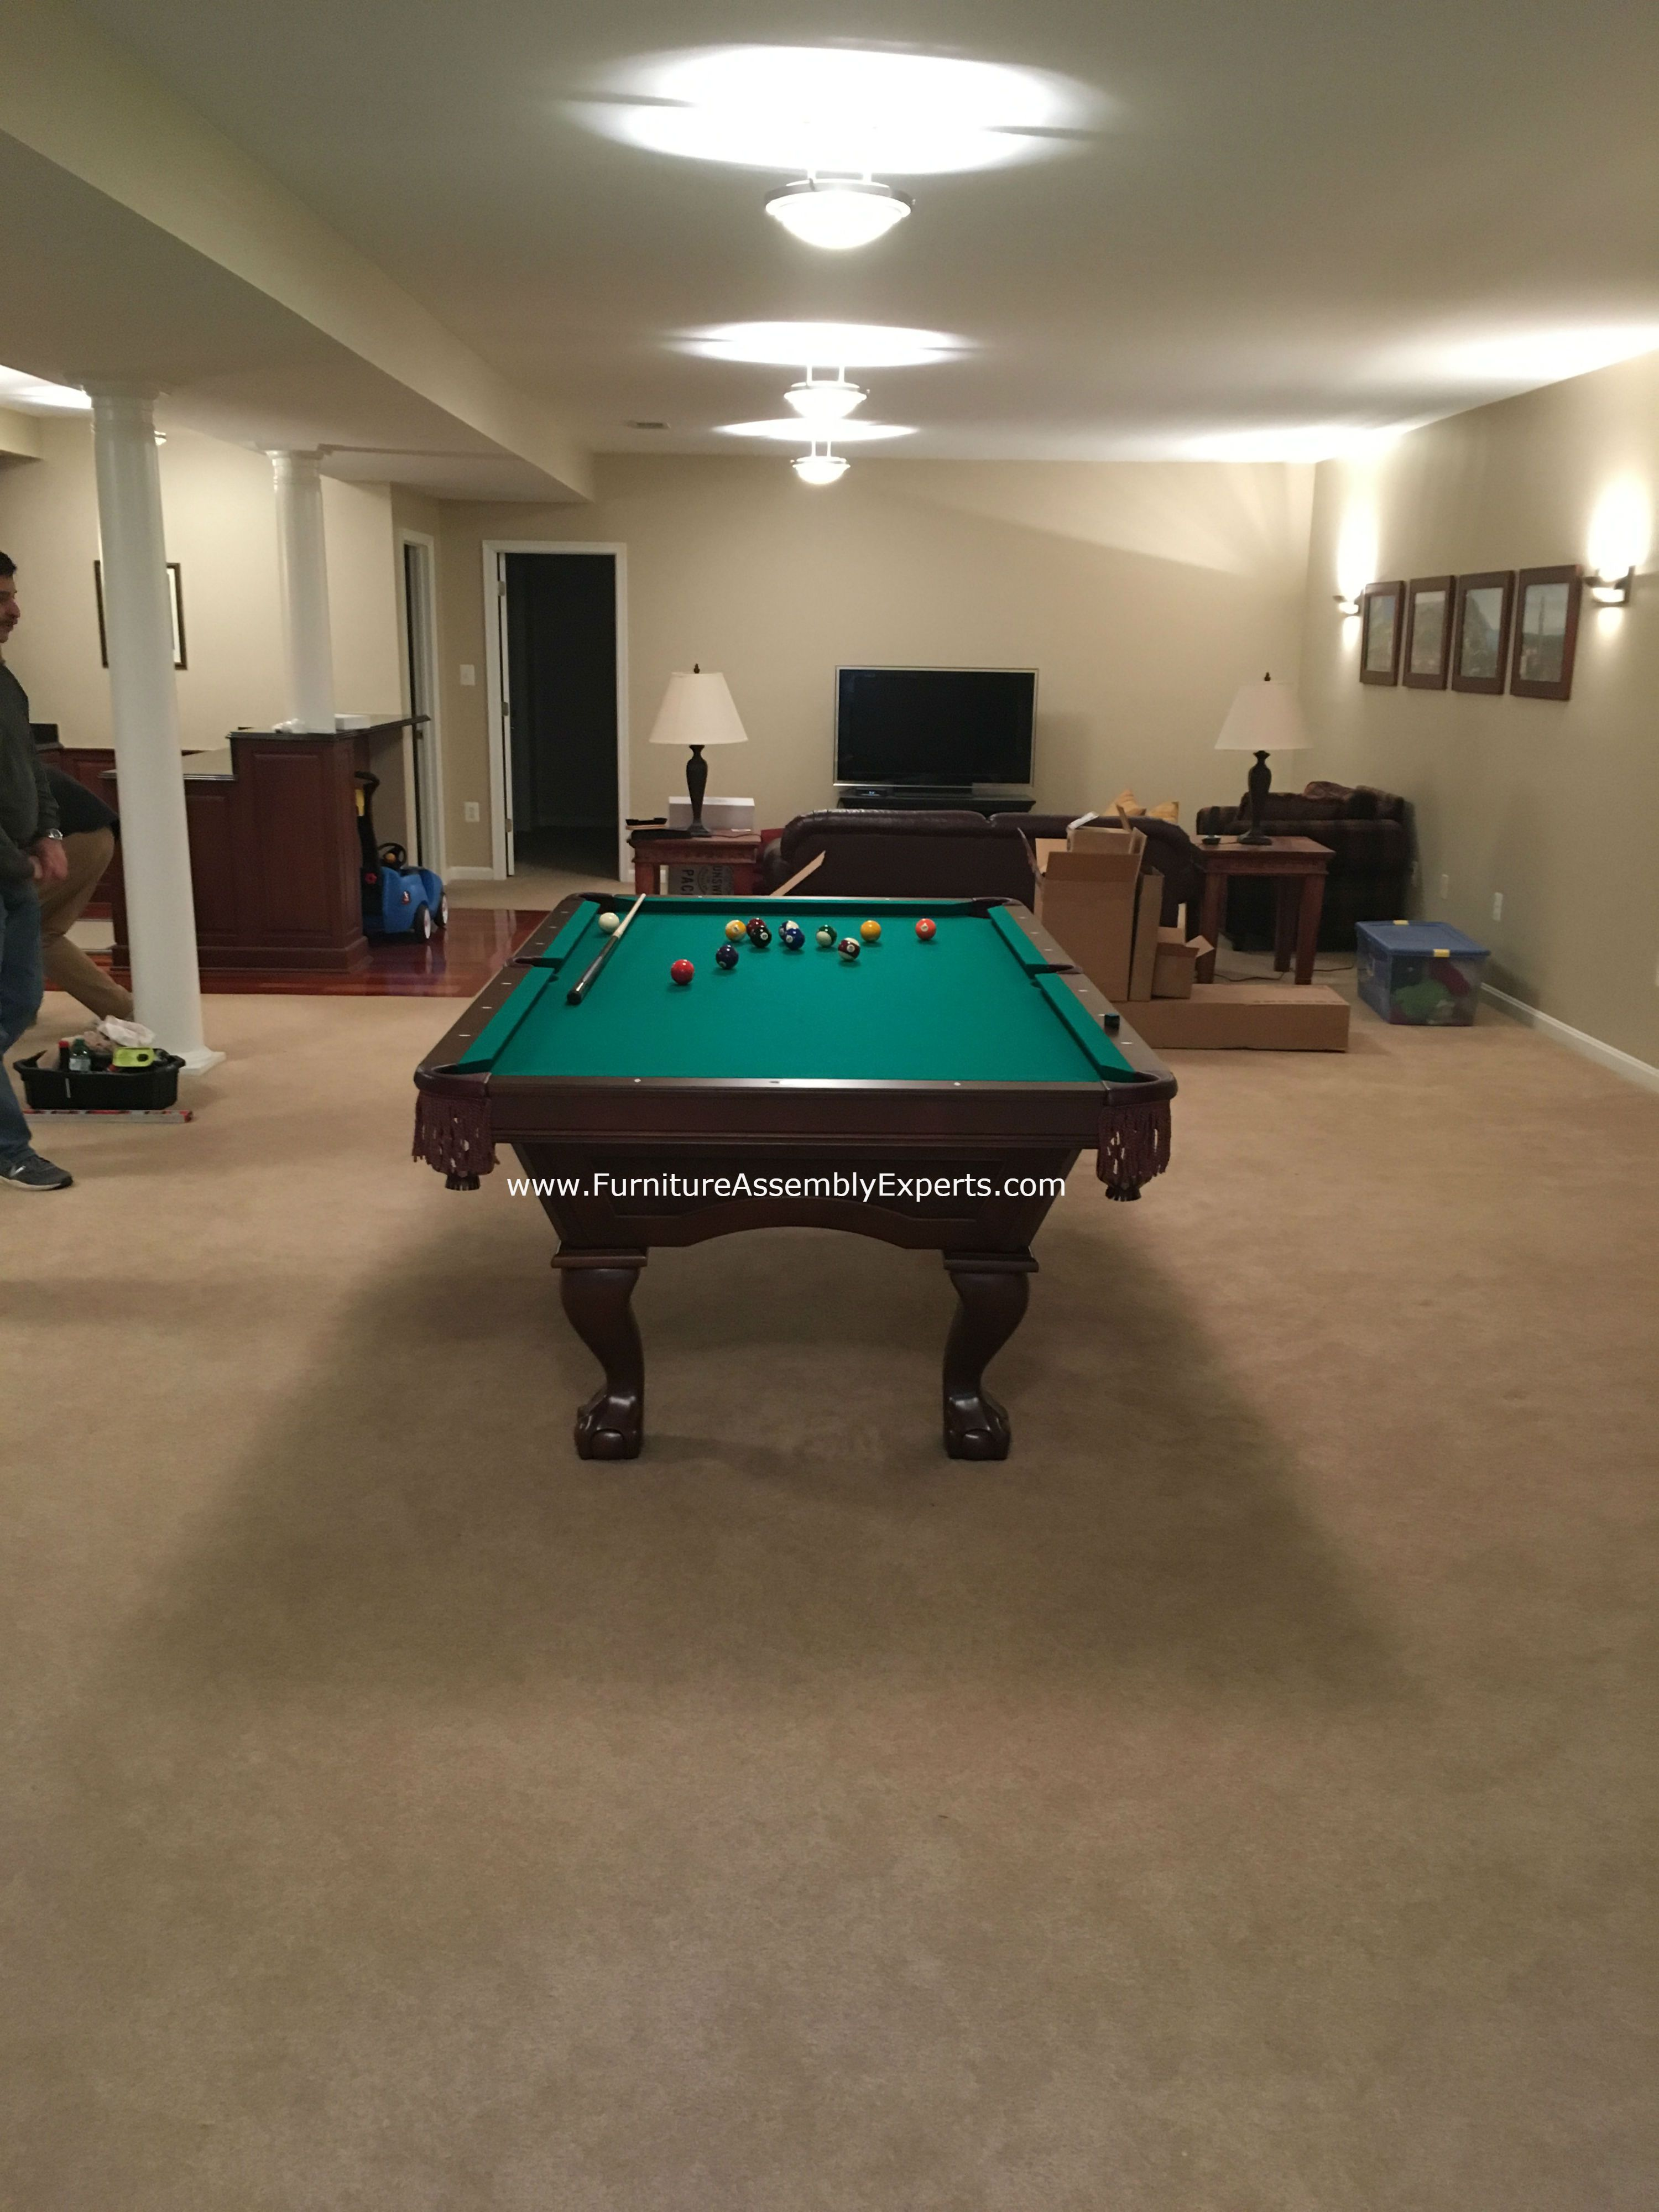 Brunswick billiards pool table assembled for a customer in